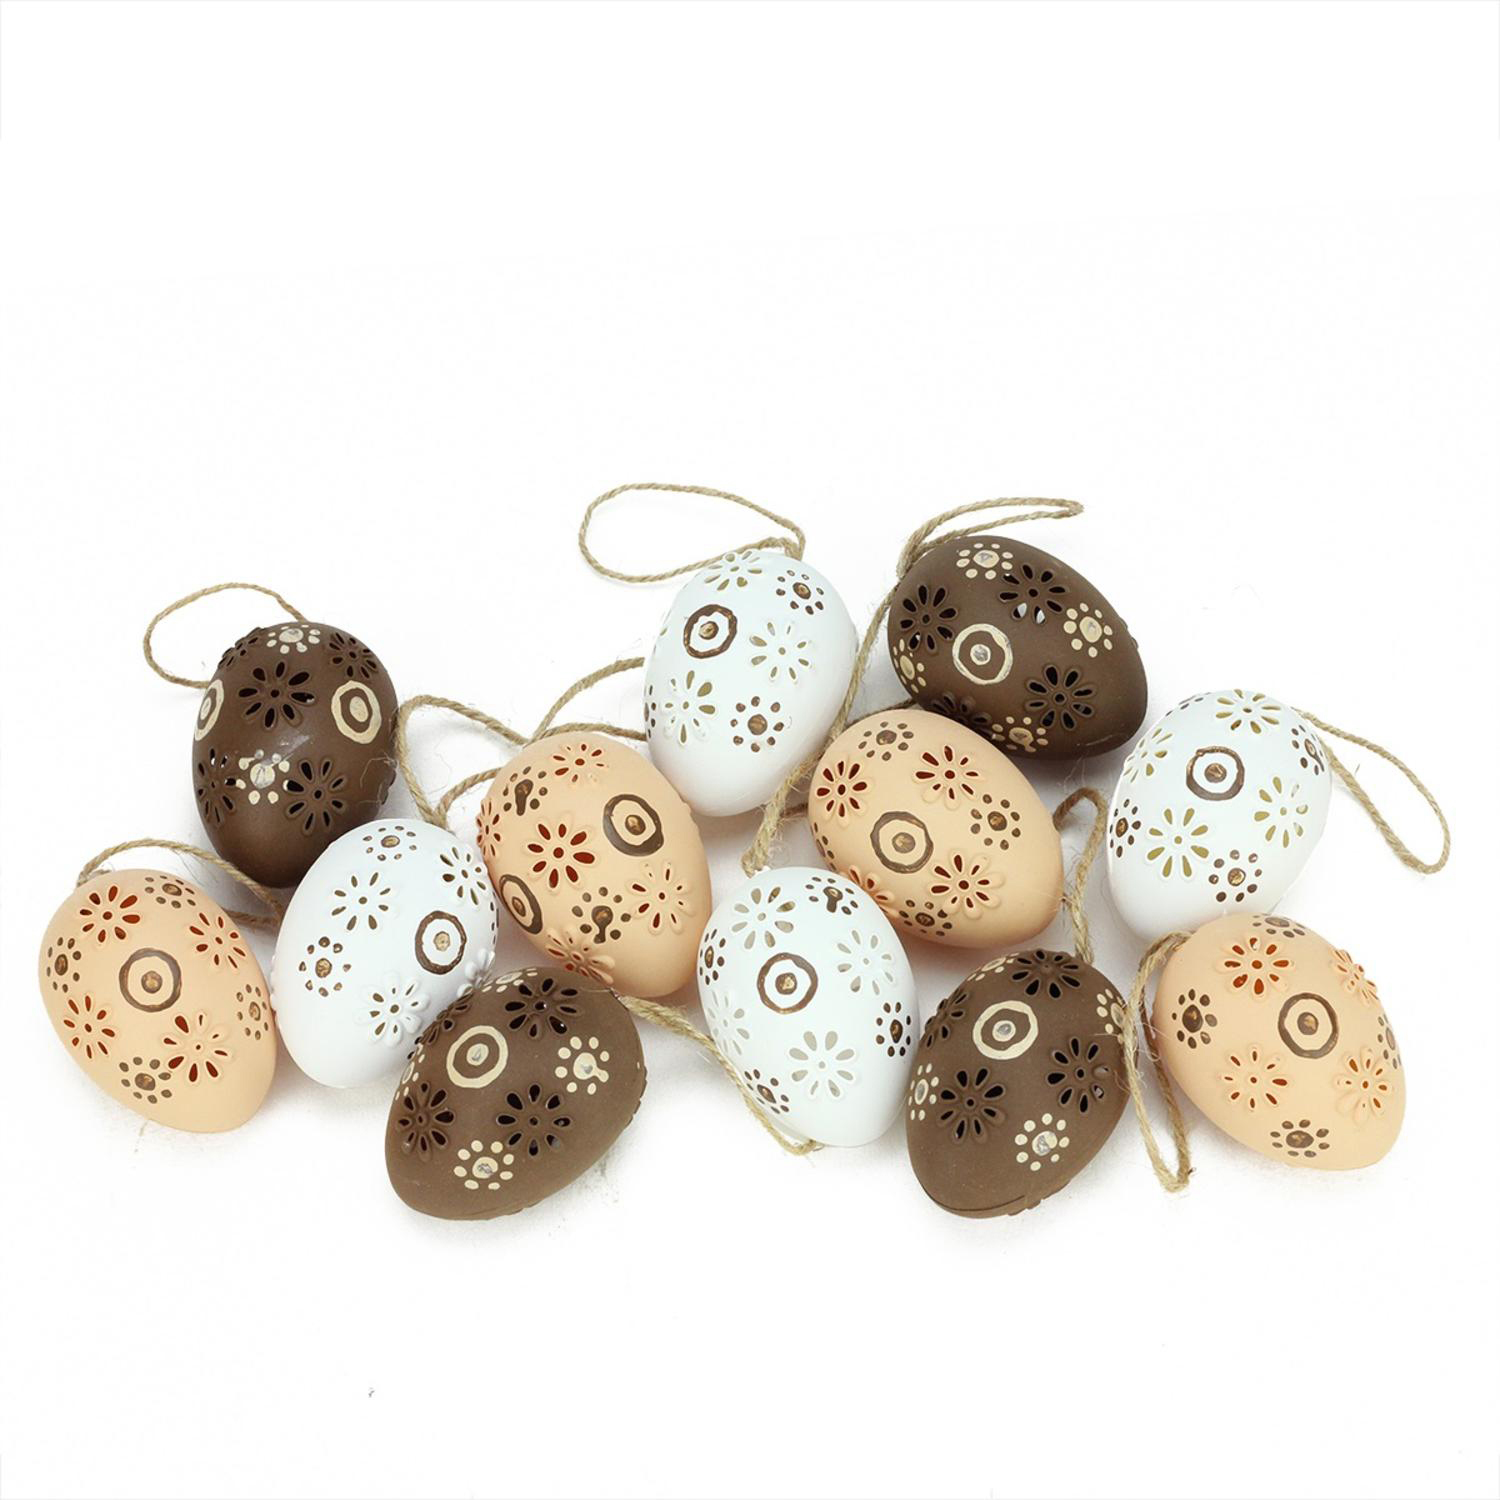 "2.25"" Natural Tone Floral Cut-Out Easter Egg Ornaments Set of 12"